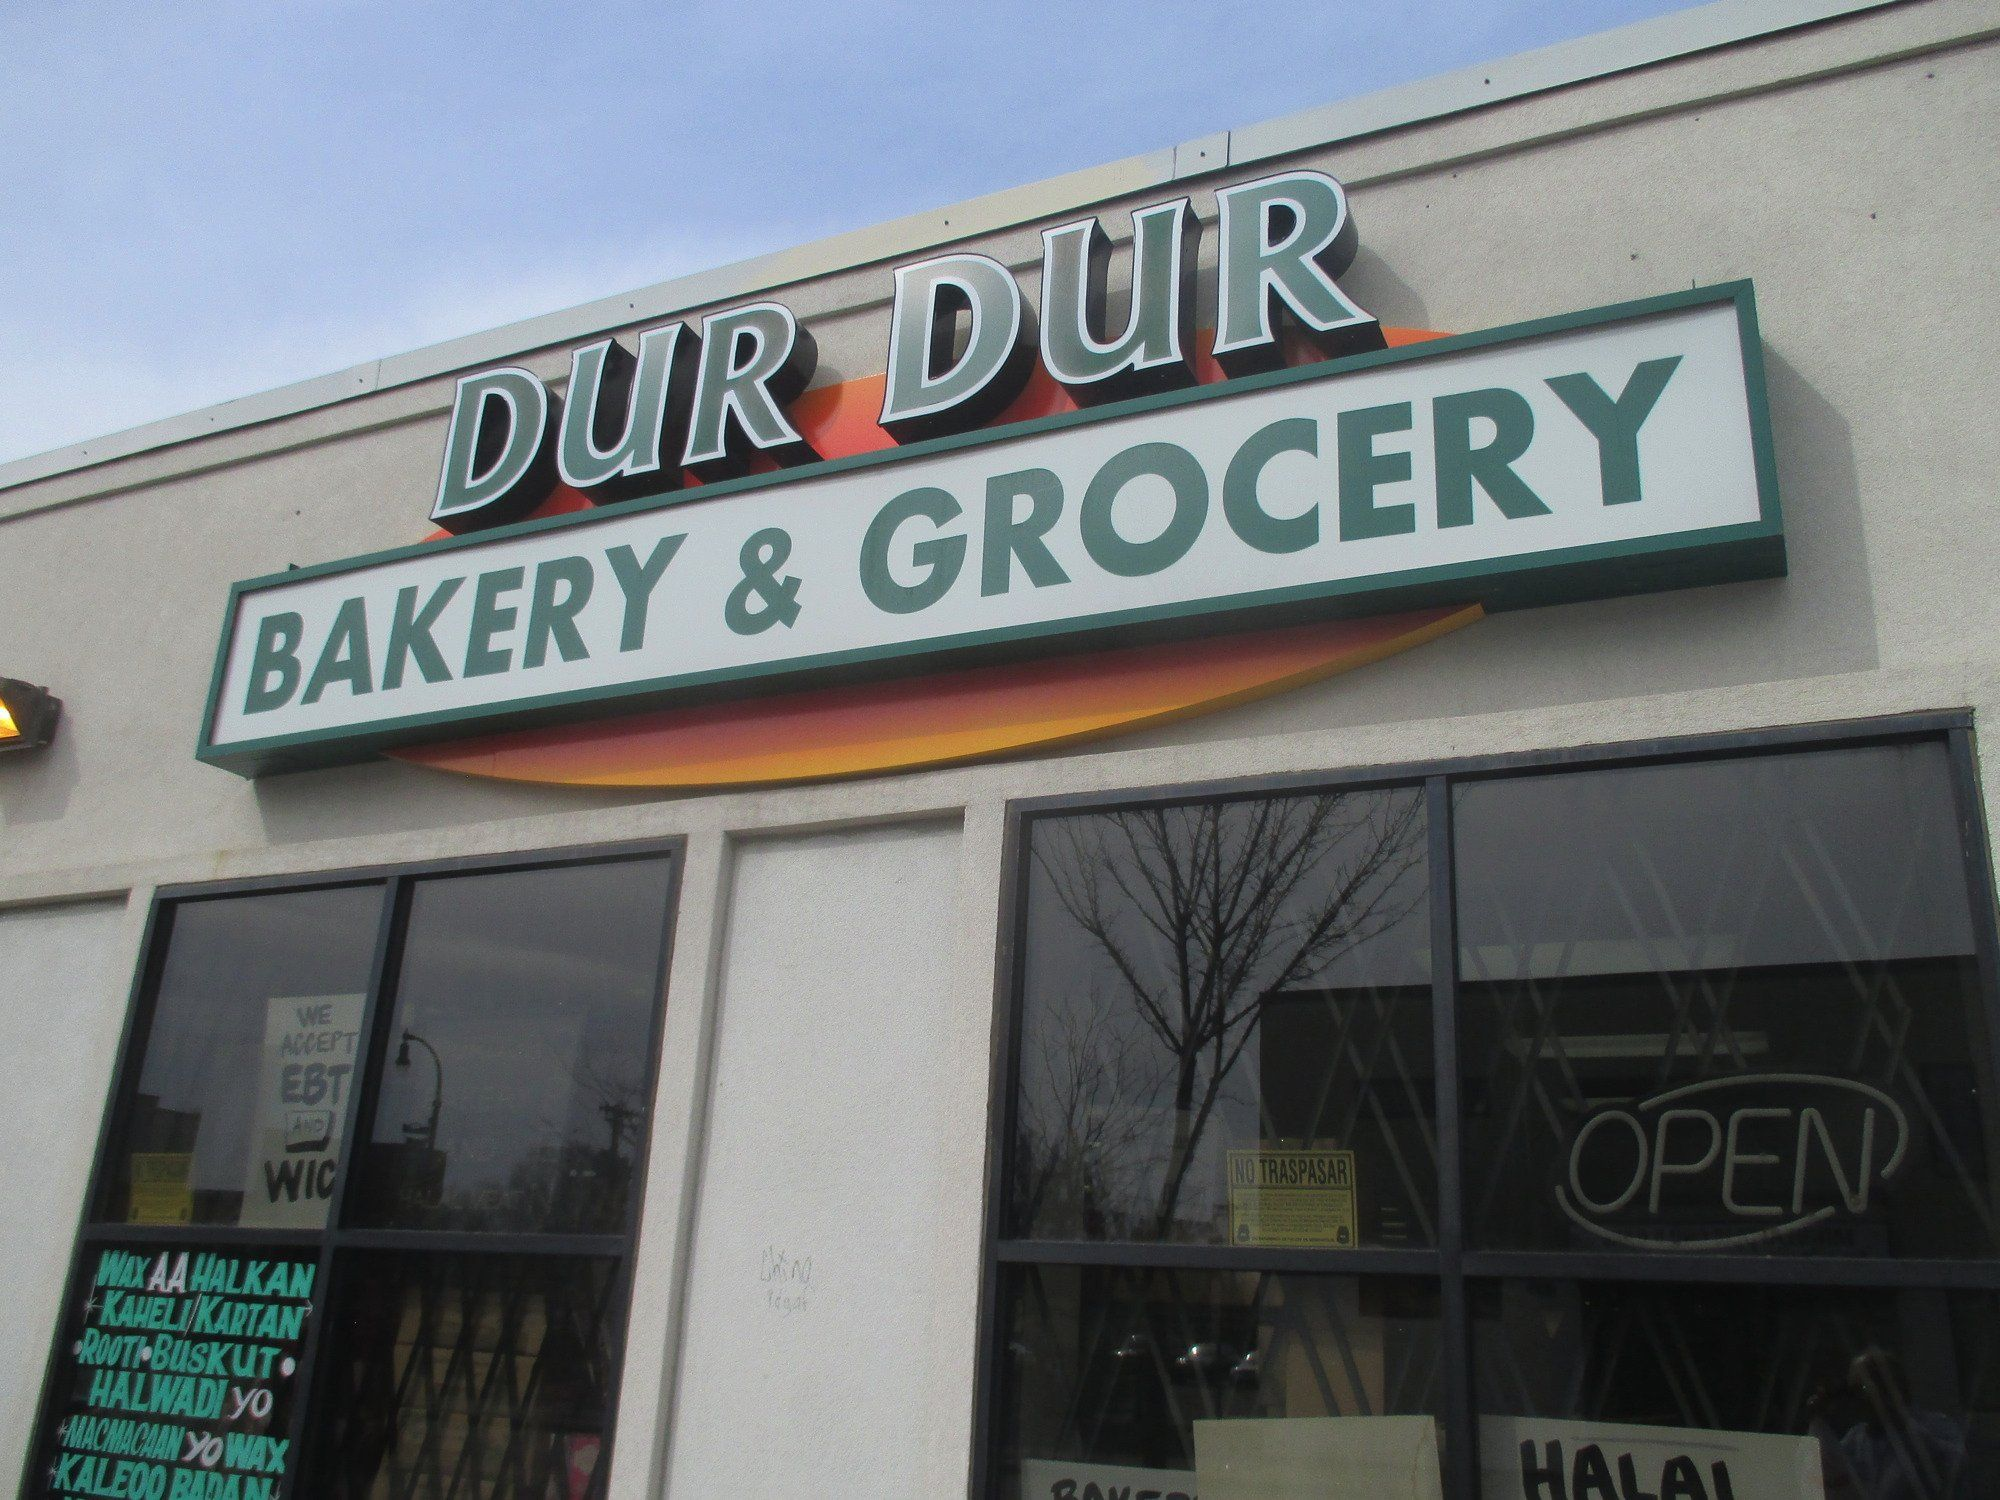 Dur Dur Bakery & Grocery Store, Minneapolis - Restaurant Reviews, Phone Number & Photos - TripAdvisor